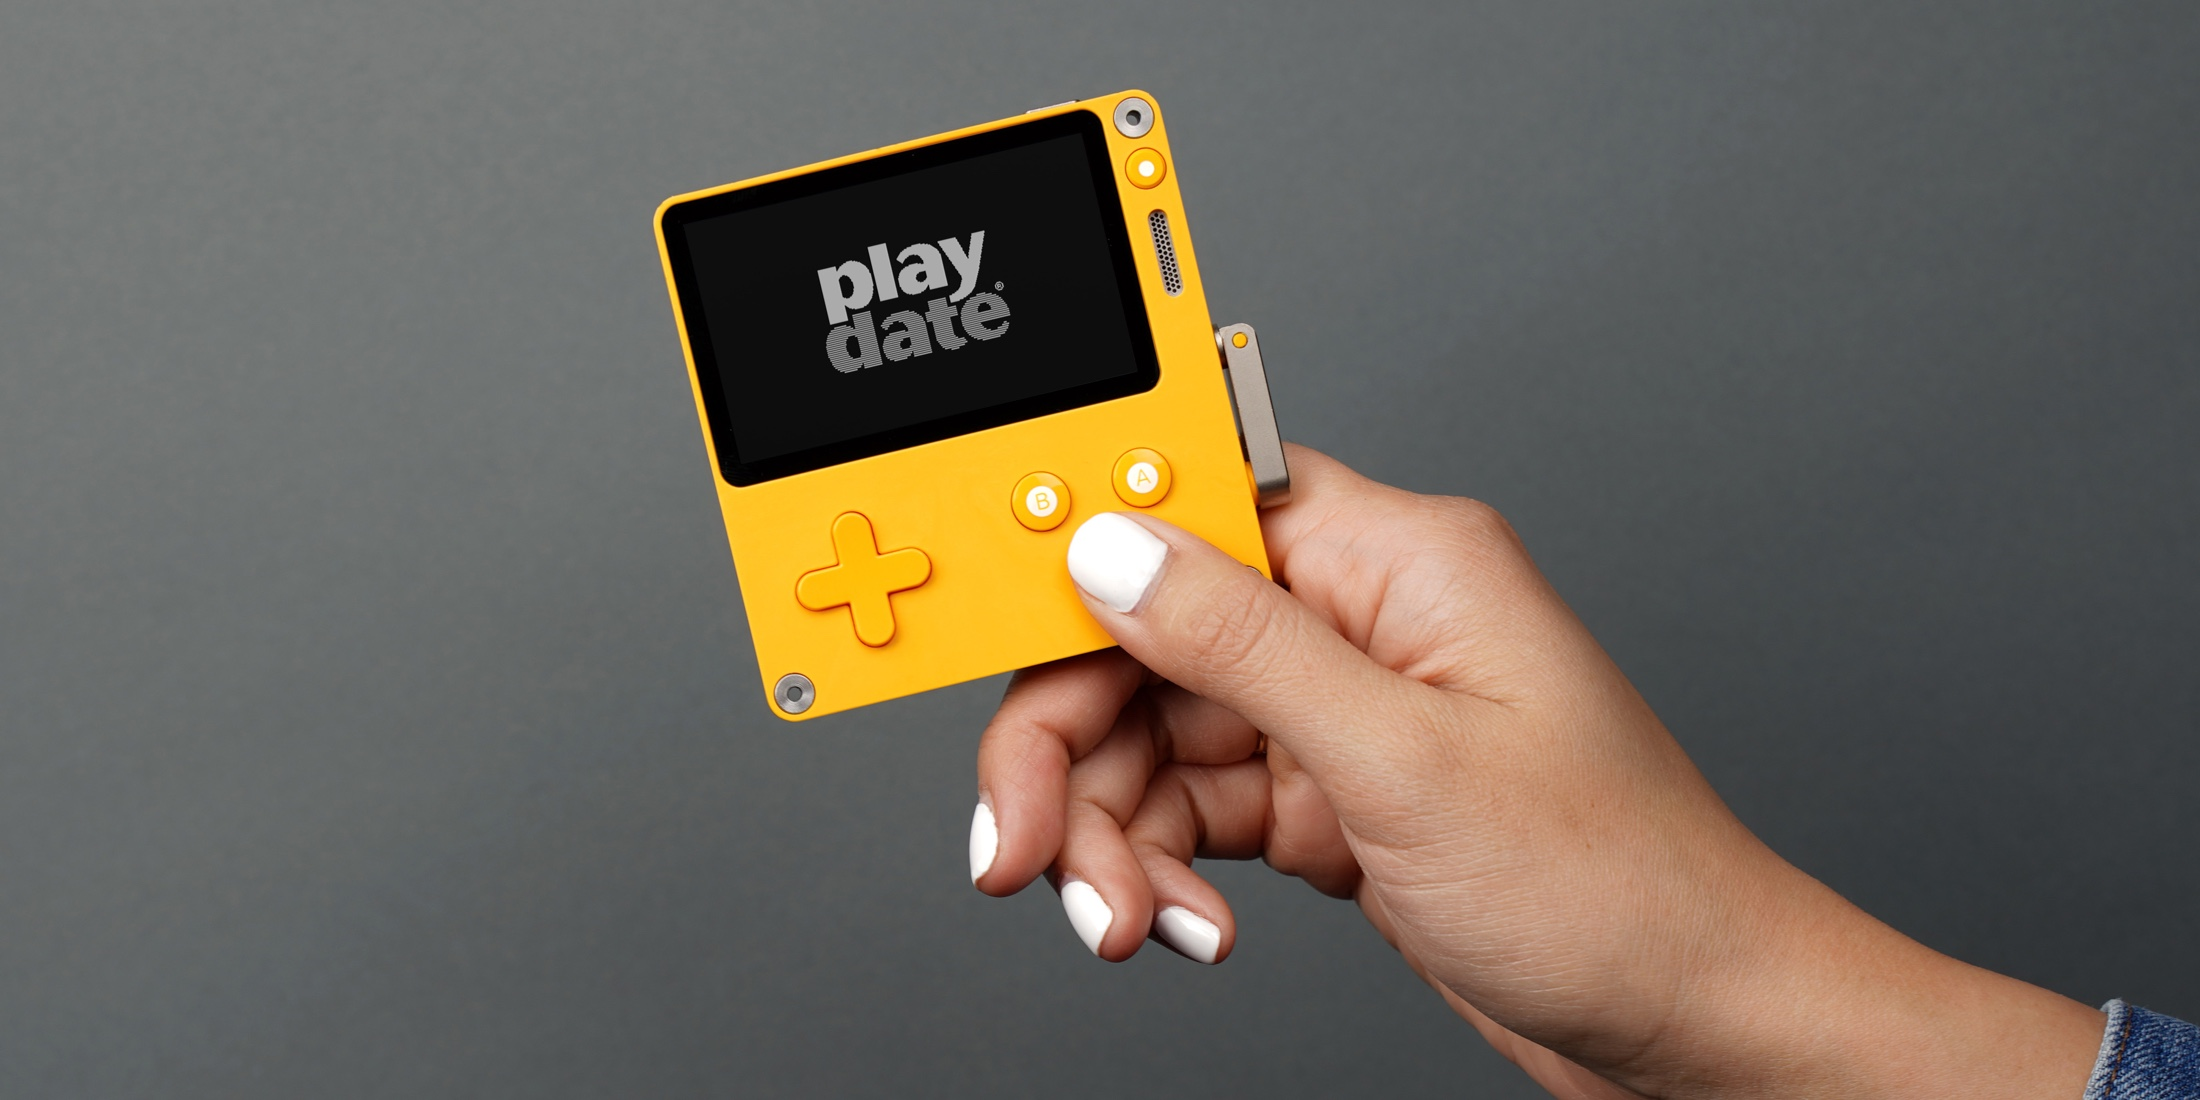 Playdate – A new handheld video game system by Panic